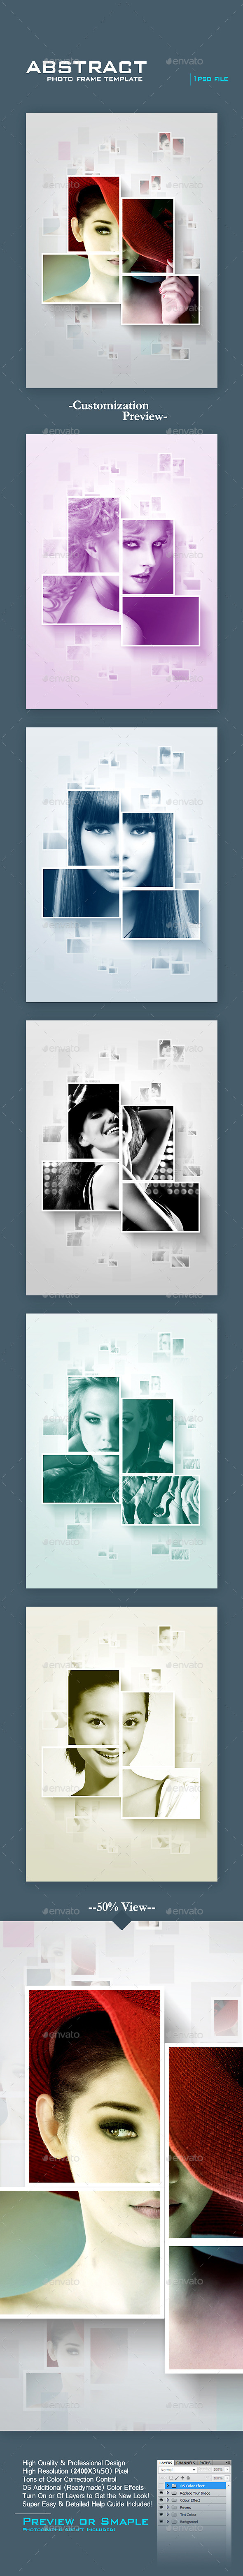 GraphicRiver Abstract Photo Frame Template 11840731